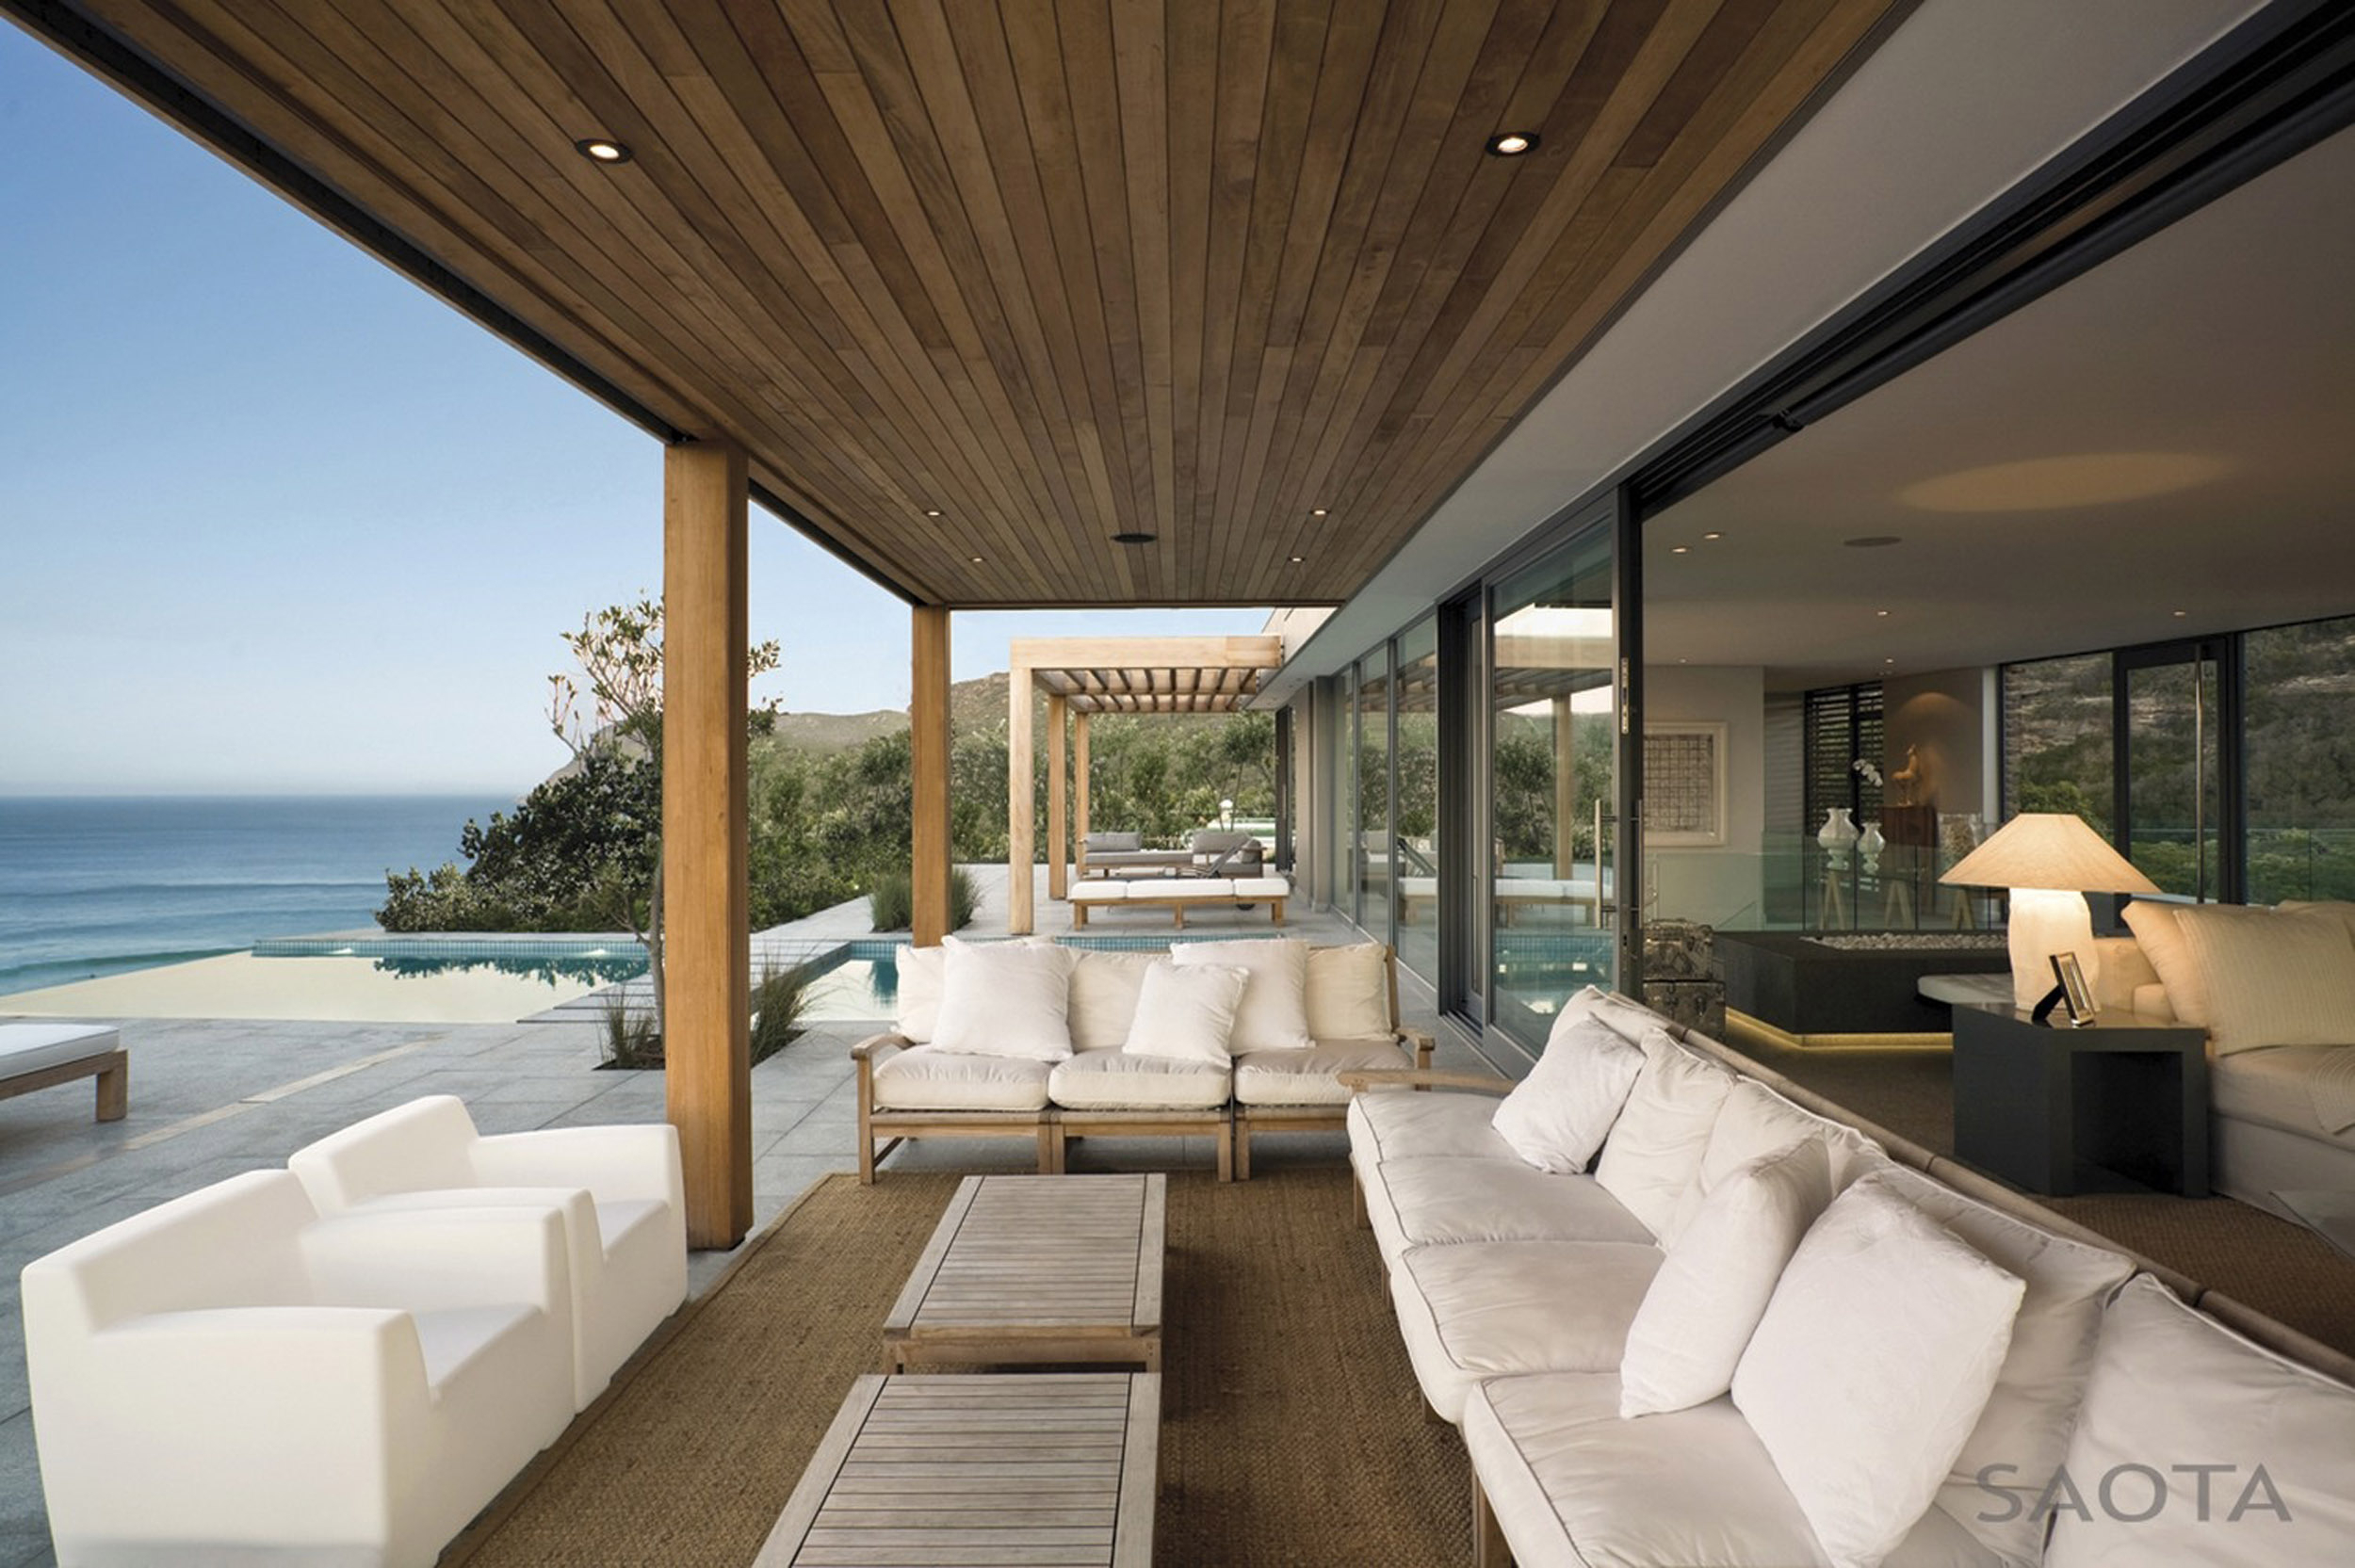 Outdoor Livig Space With White Sofa Set And Wooden Ceiling With Panoramic Ocean View From Plett By Saota Architect Indoor Outdoor Living Spaces (Image 19 of 20)